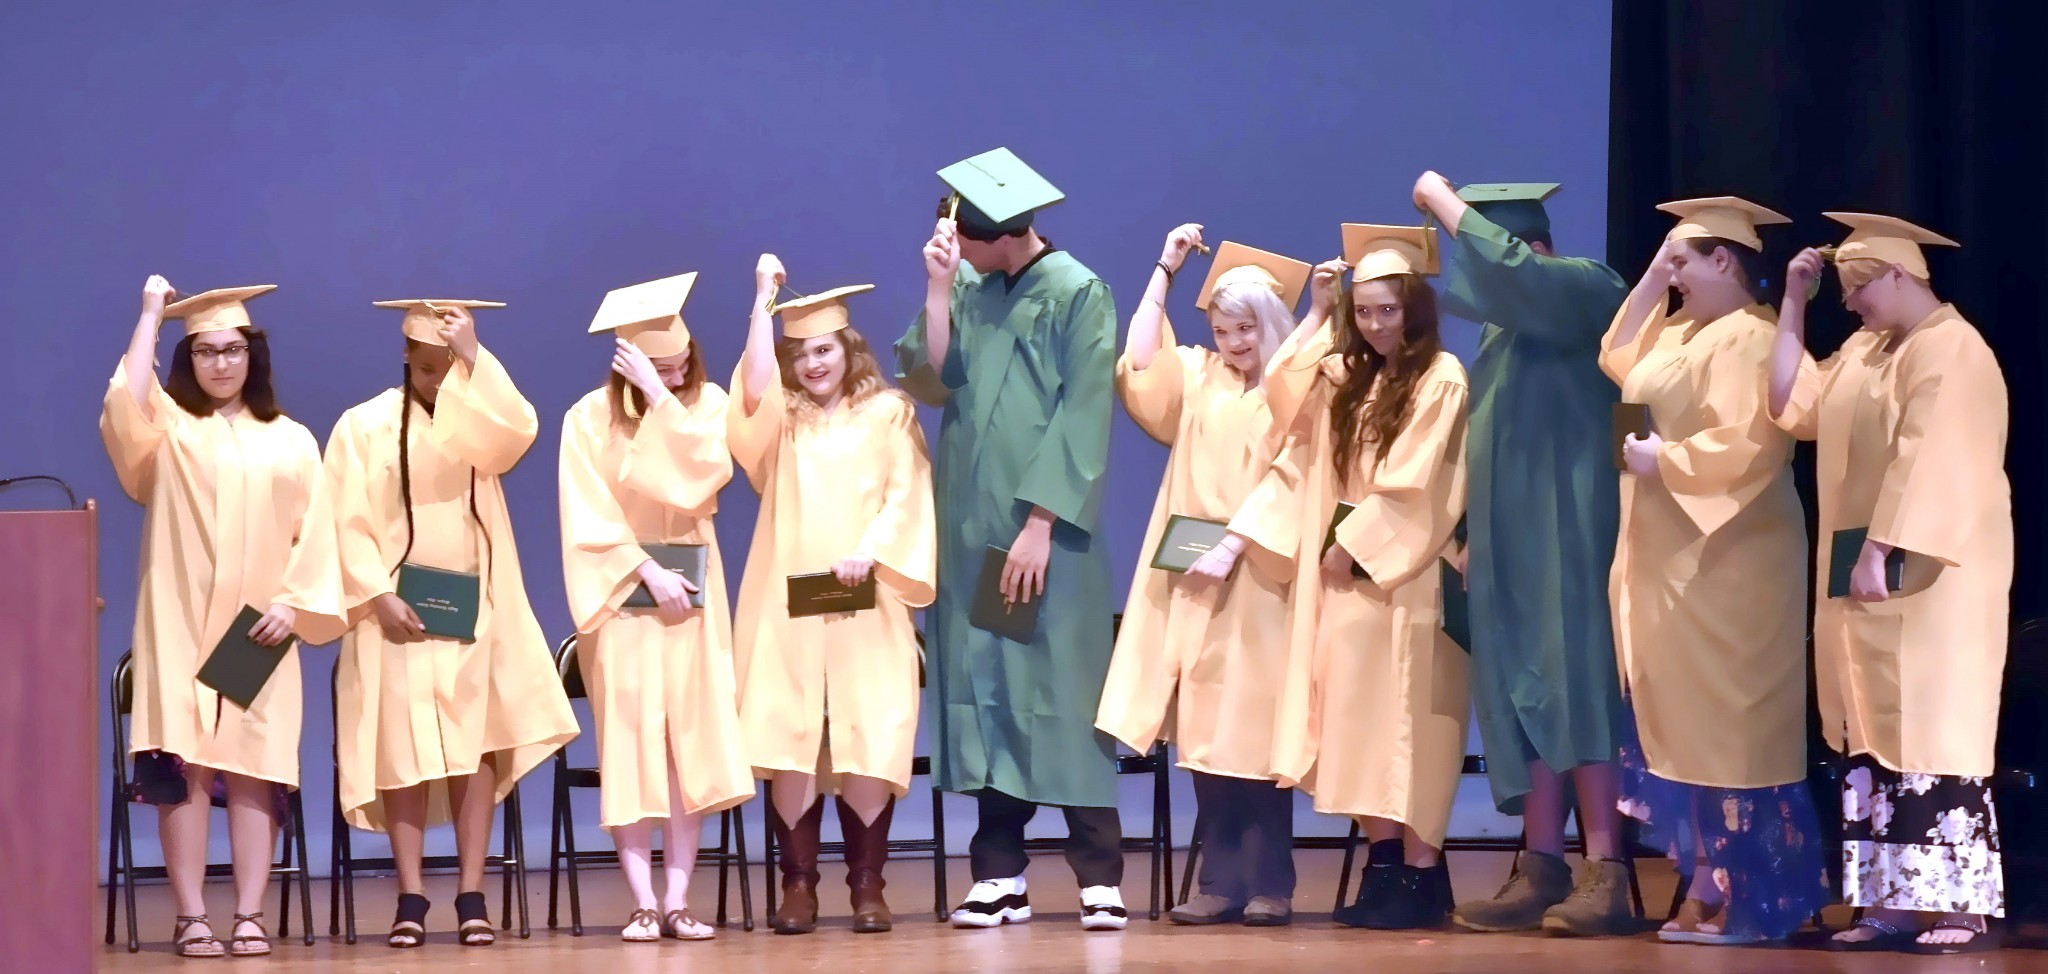 Oregon Eagle Learning Center celebrated a record number of graduates at 2019 commencement ceremonies held May 30. (Submitted photo)